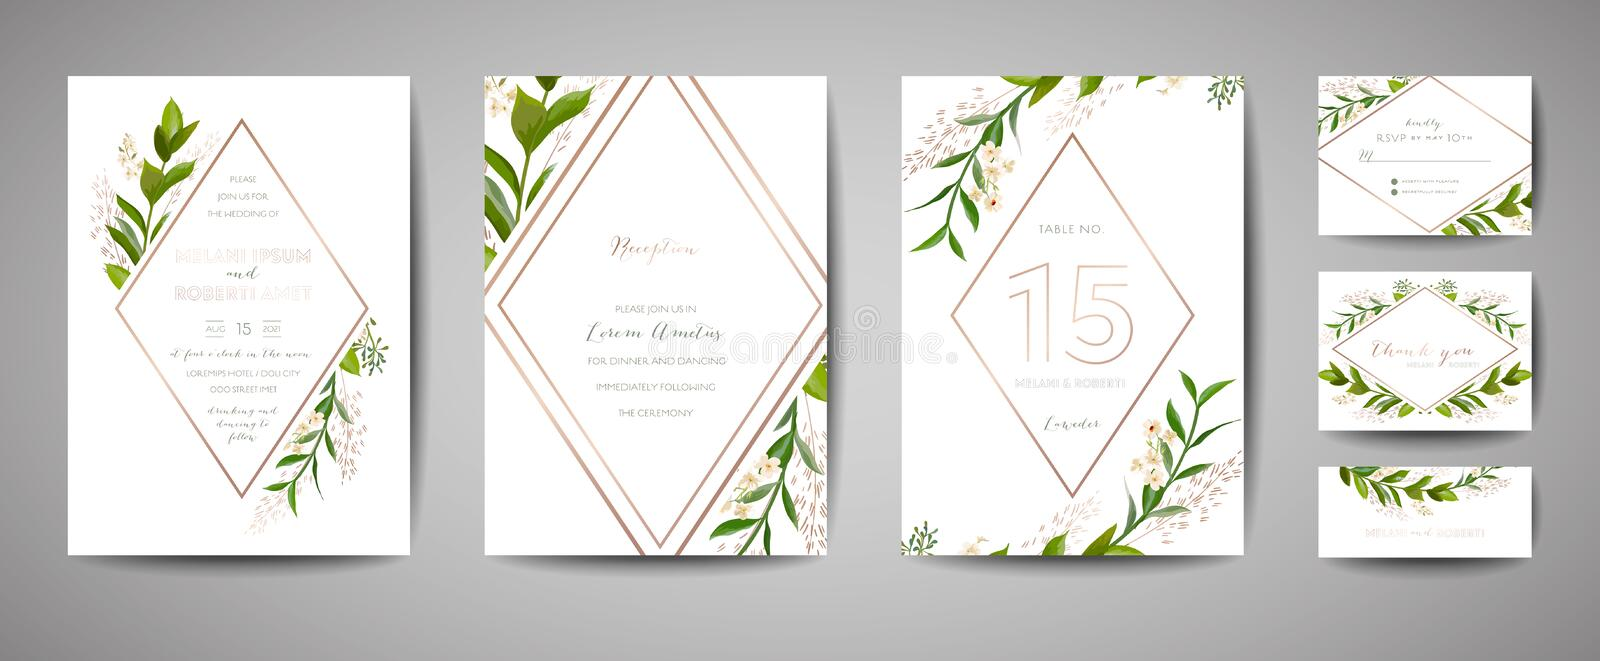 Luxury Flower Vintage Wedding Save the Date, Invitation Floral Cards Collection with Gold Foil Frame. trendy cover, graphic poster royalty free illustration